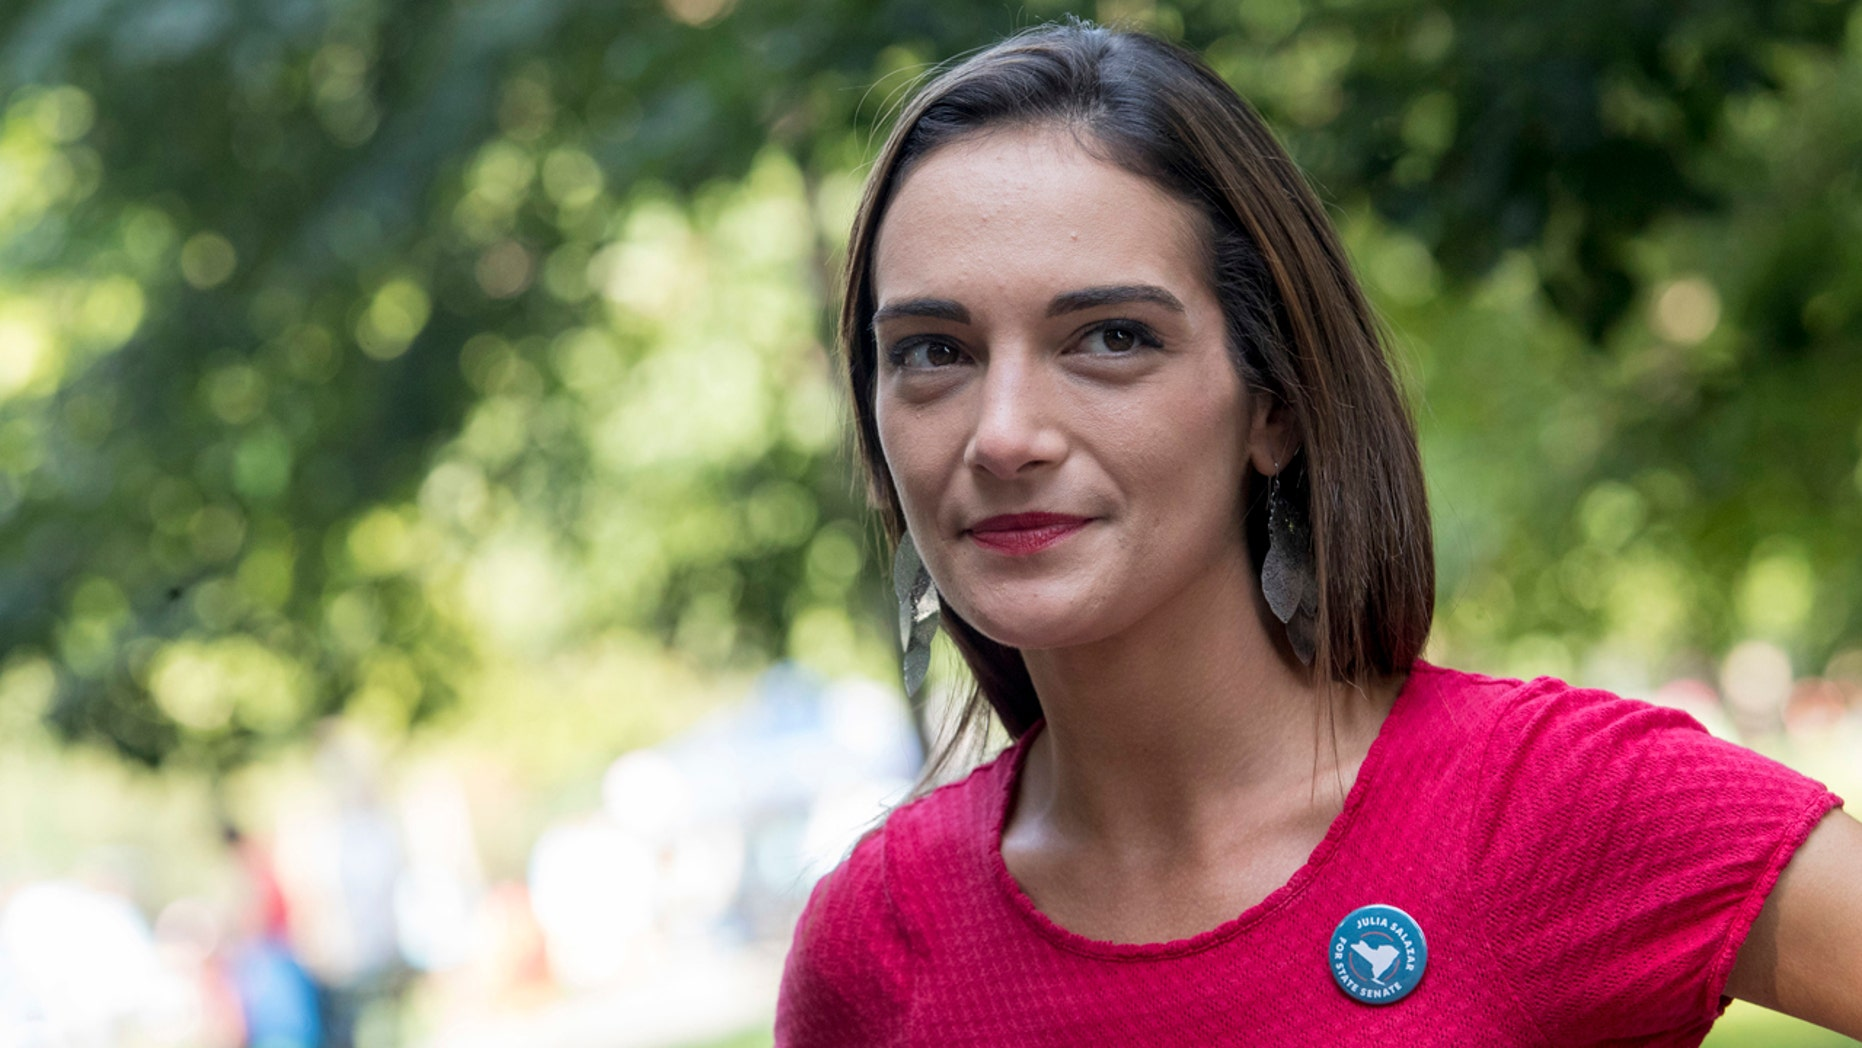 In this Aug. 15, 2018 file photo, Democratic New York state Senate candidate Julia Salazar smiles as she speaks to a supporter before a rally in McCarren Park in Brooklyn. Salazer said Sep. 11 that she was sexually assaulted five years ago by David Keyes , a spokesman for Israeli Prime Minister Benjamin Netanyahu, an accusation he denies. (AP Photo/Mary Altaffer, File)